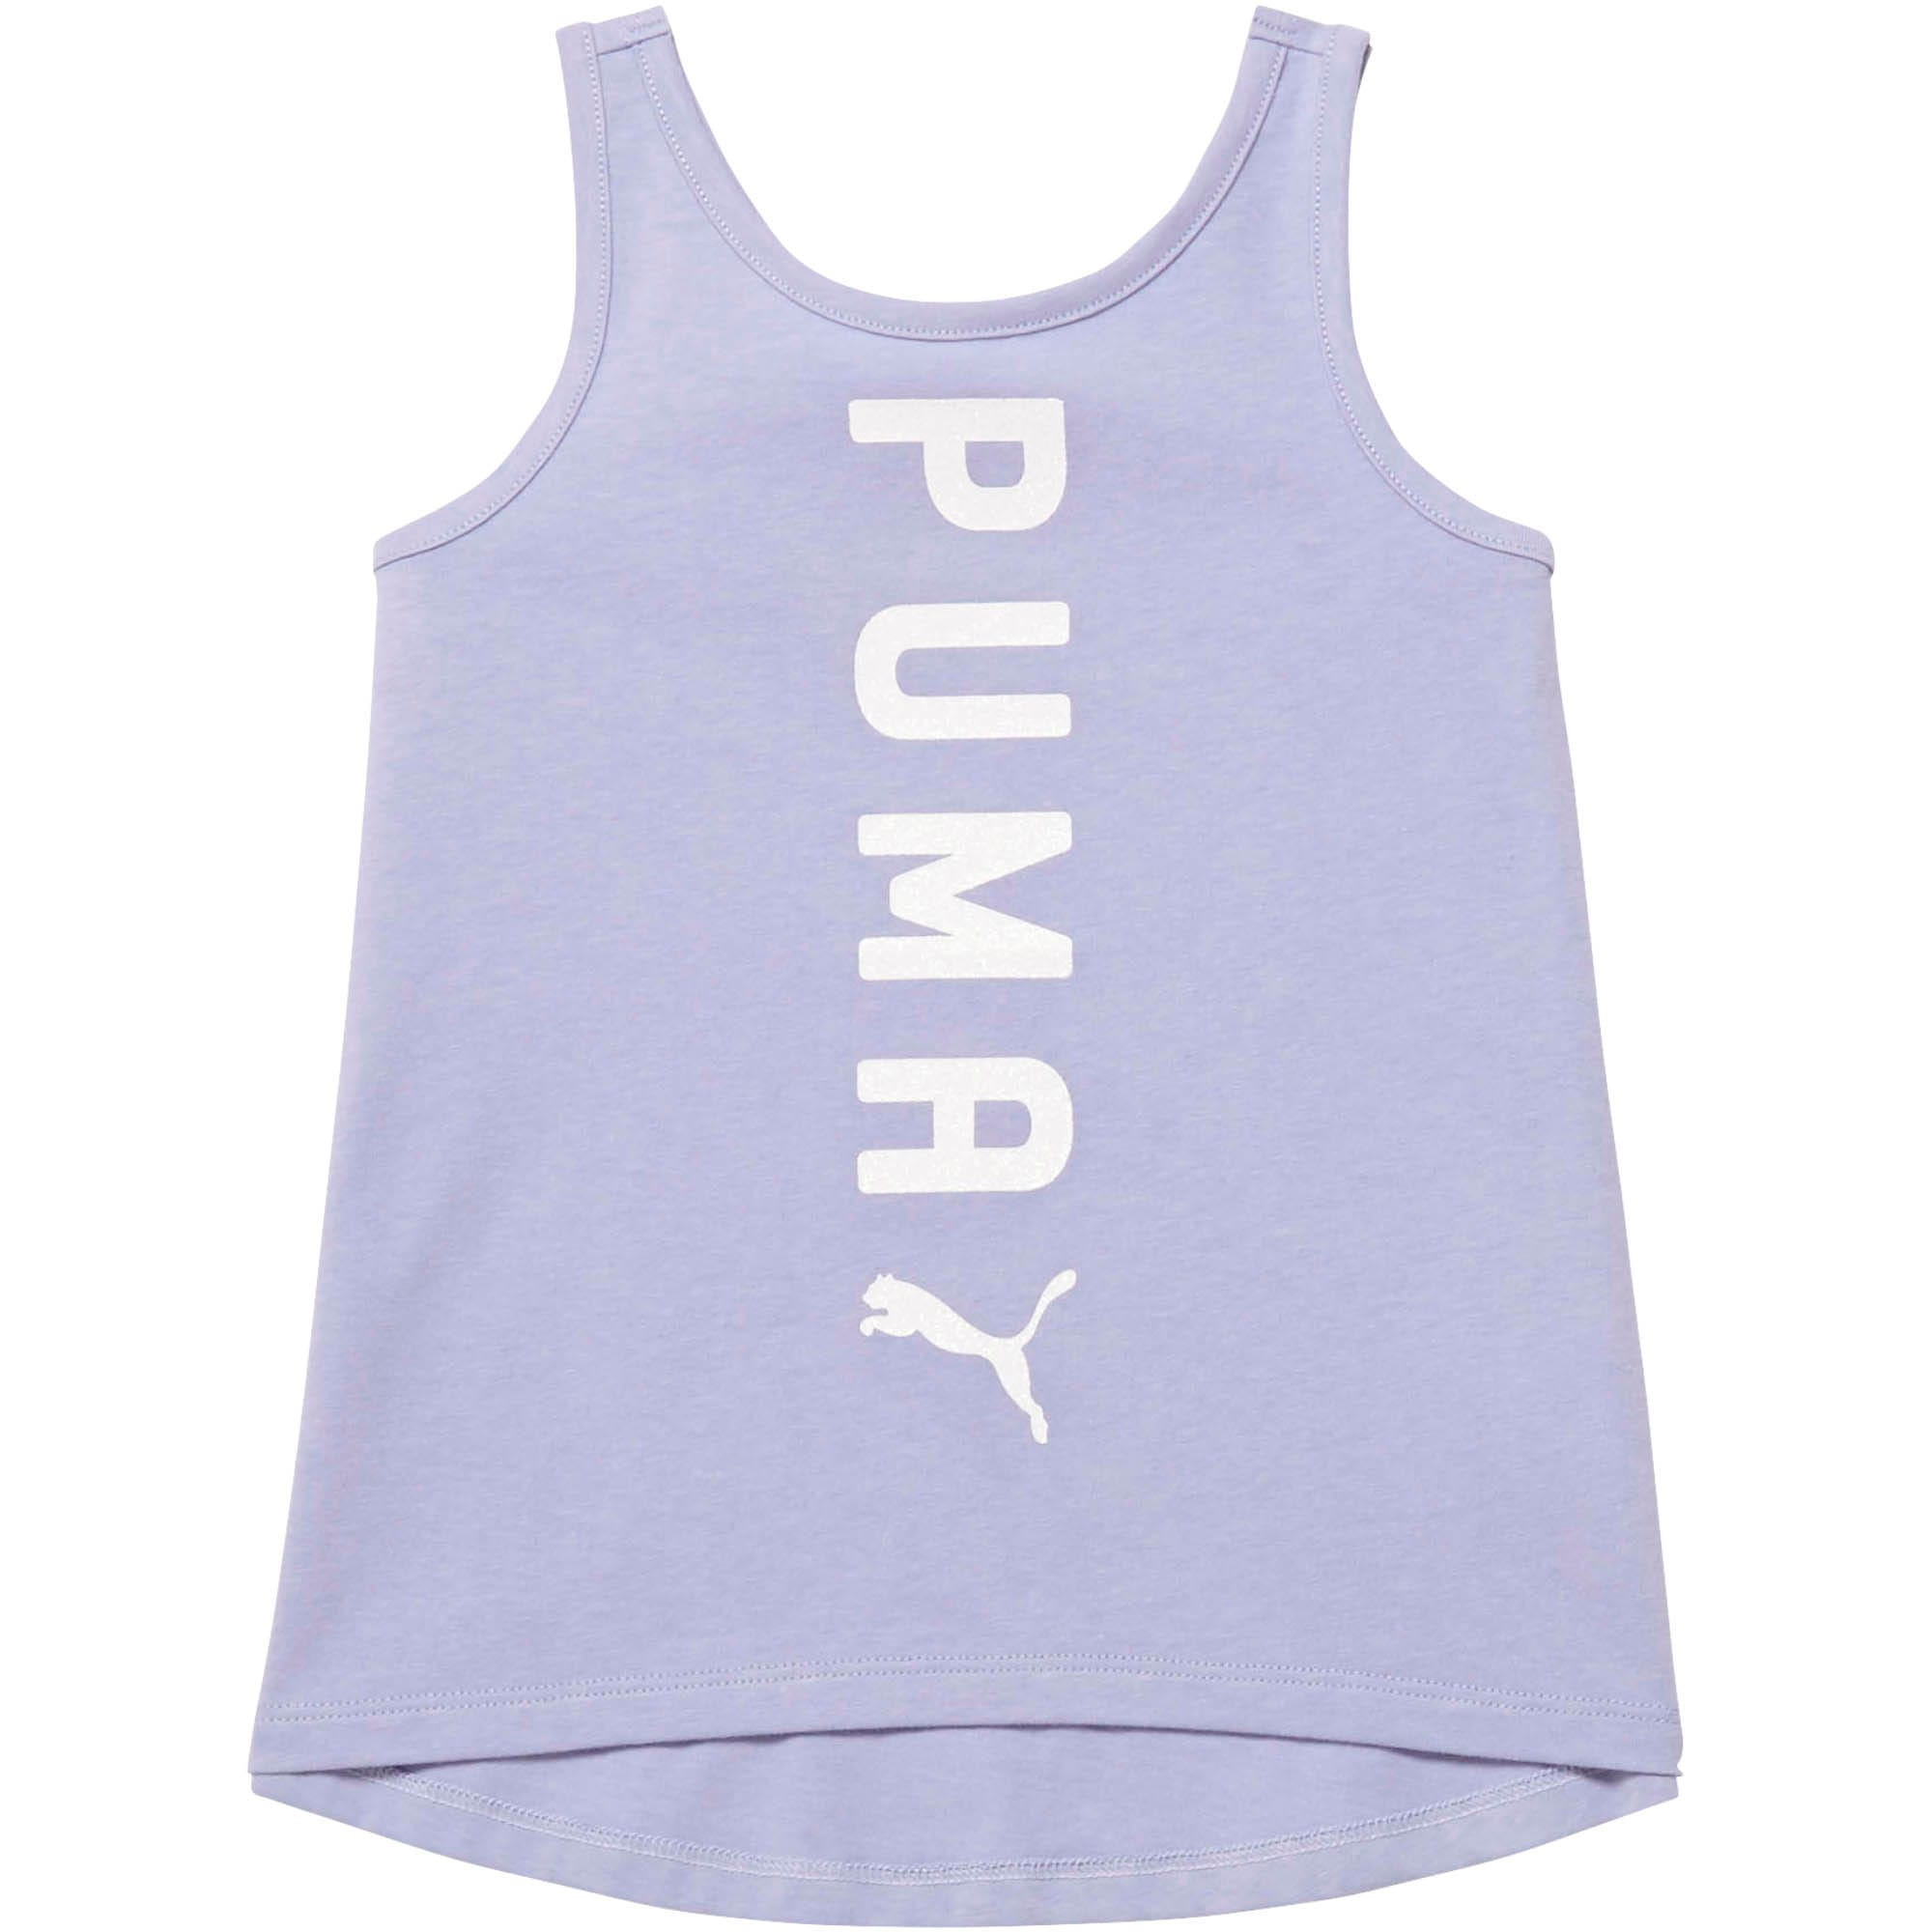 Thumbnail 1 of Toddler Crossover Fashion Tank, SWEET LAVENDER, medium